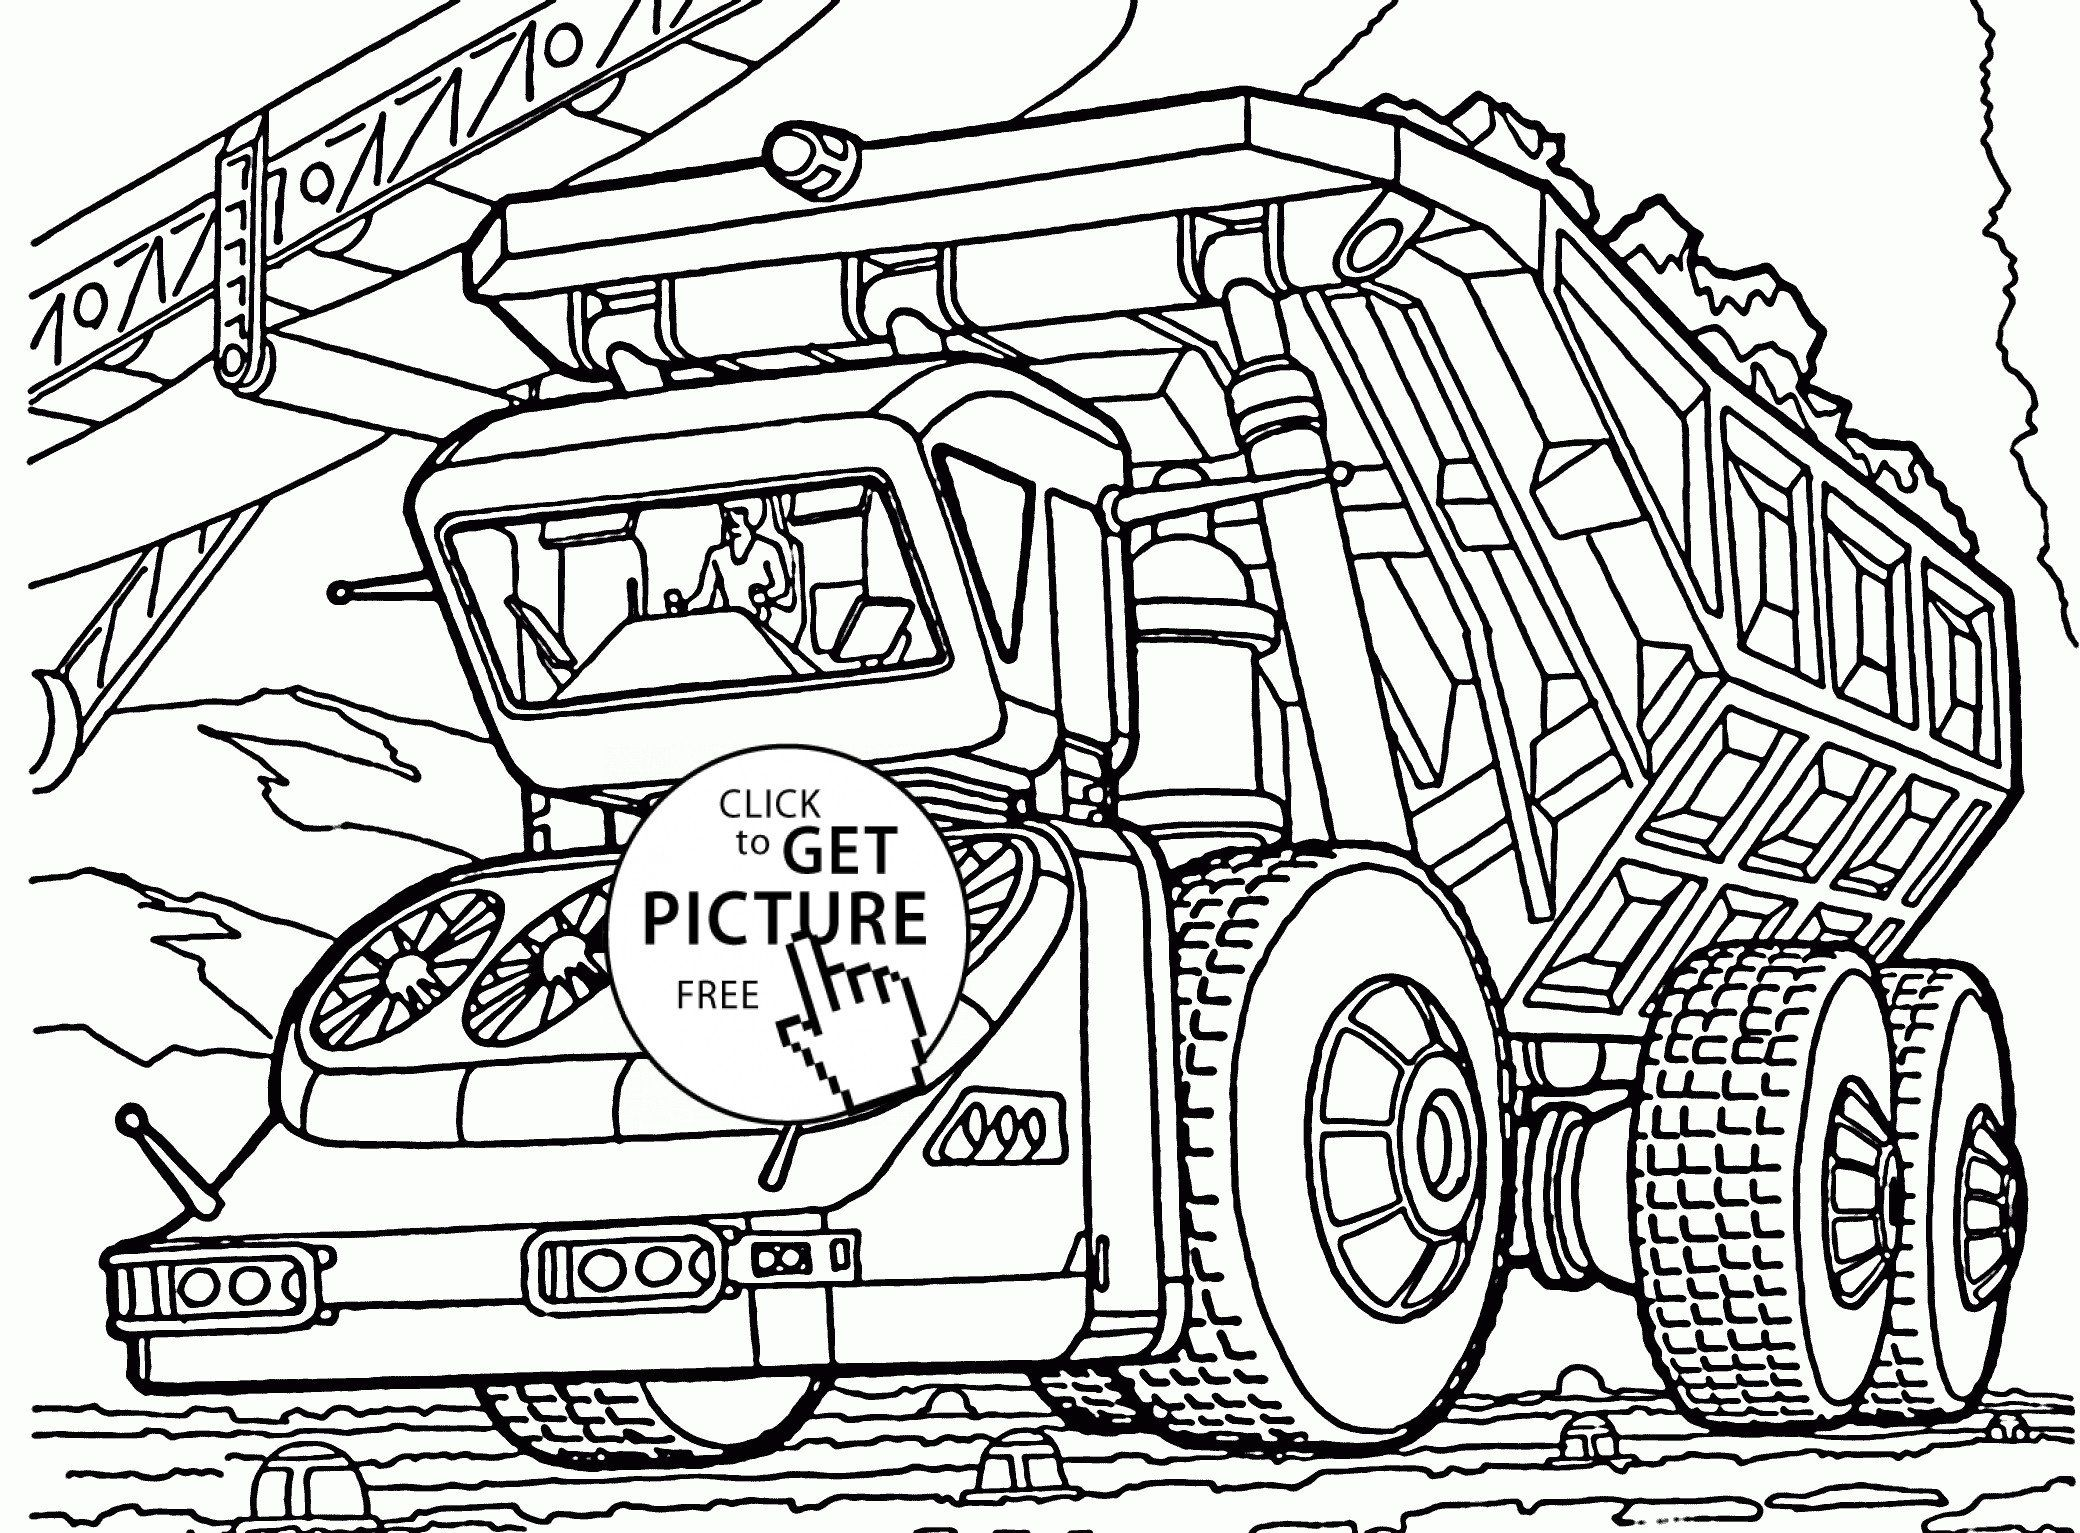 Garbage Truck Coloring Page Luxury Military Truck Coloring Pages At Getdrawings Truck Coloring Pages Cars Coloring Pages Tractor Coloring Pages